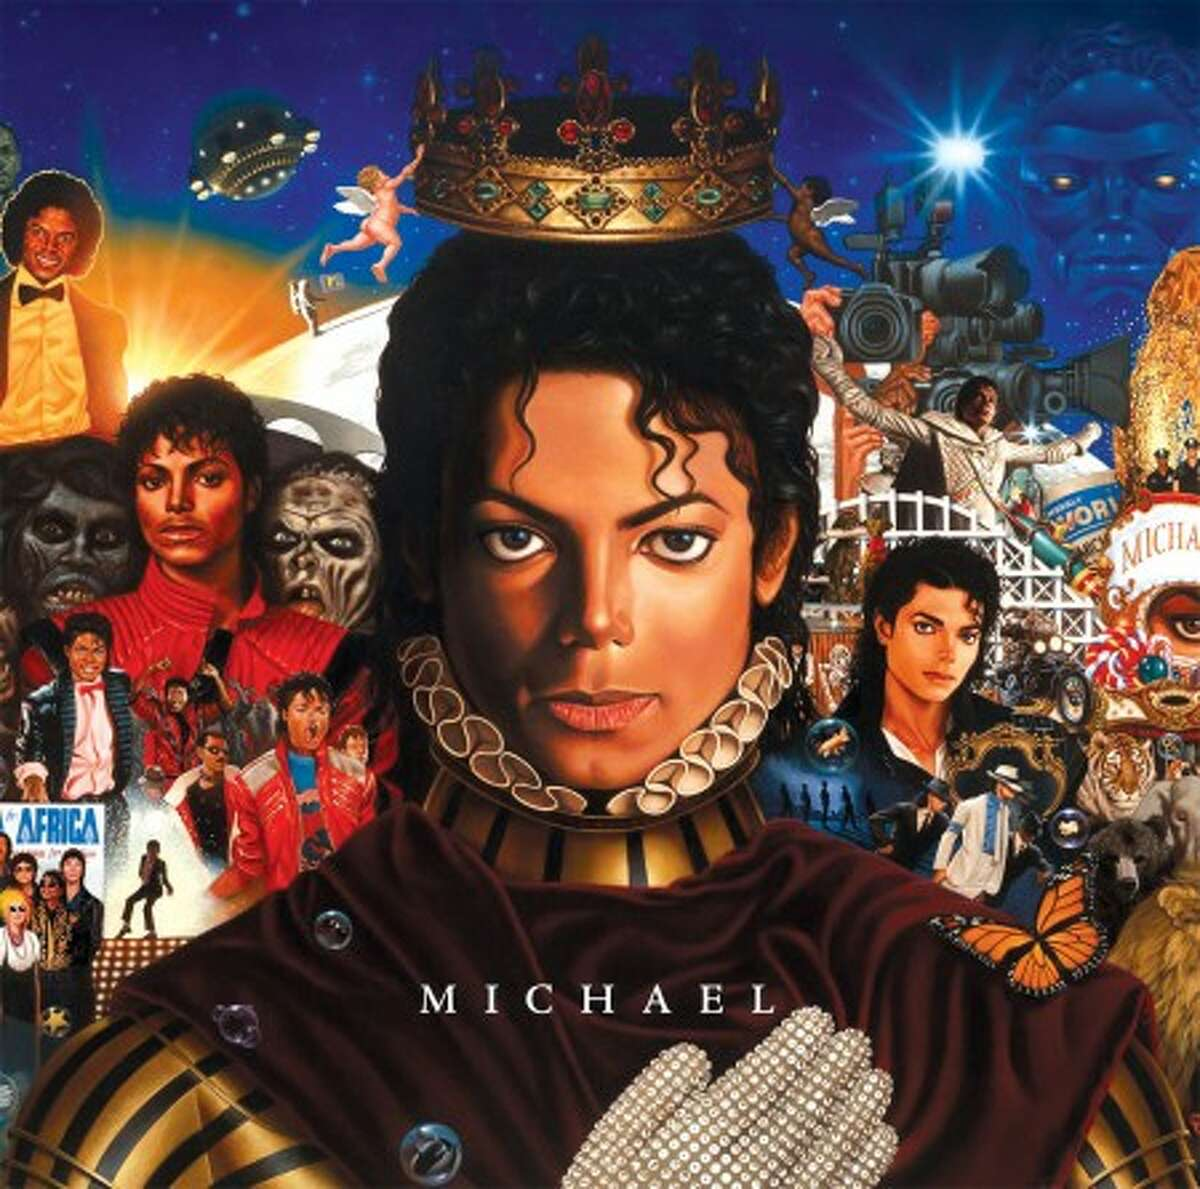 """In this CD cover image released by Epic Records, newly completed recordings from Michael Jackson entitled """"Michael,"""" is shown. (AP Photo/Epic Records)"""